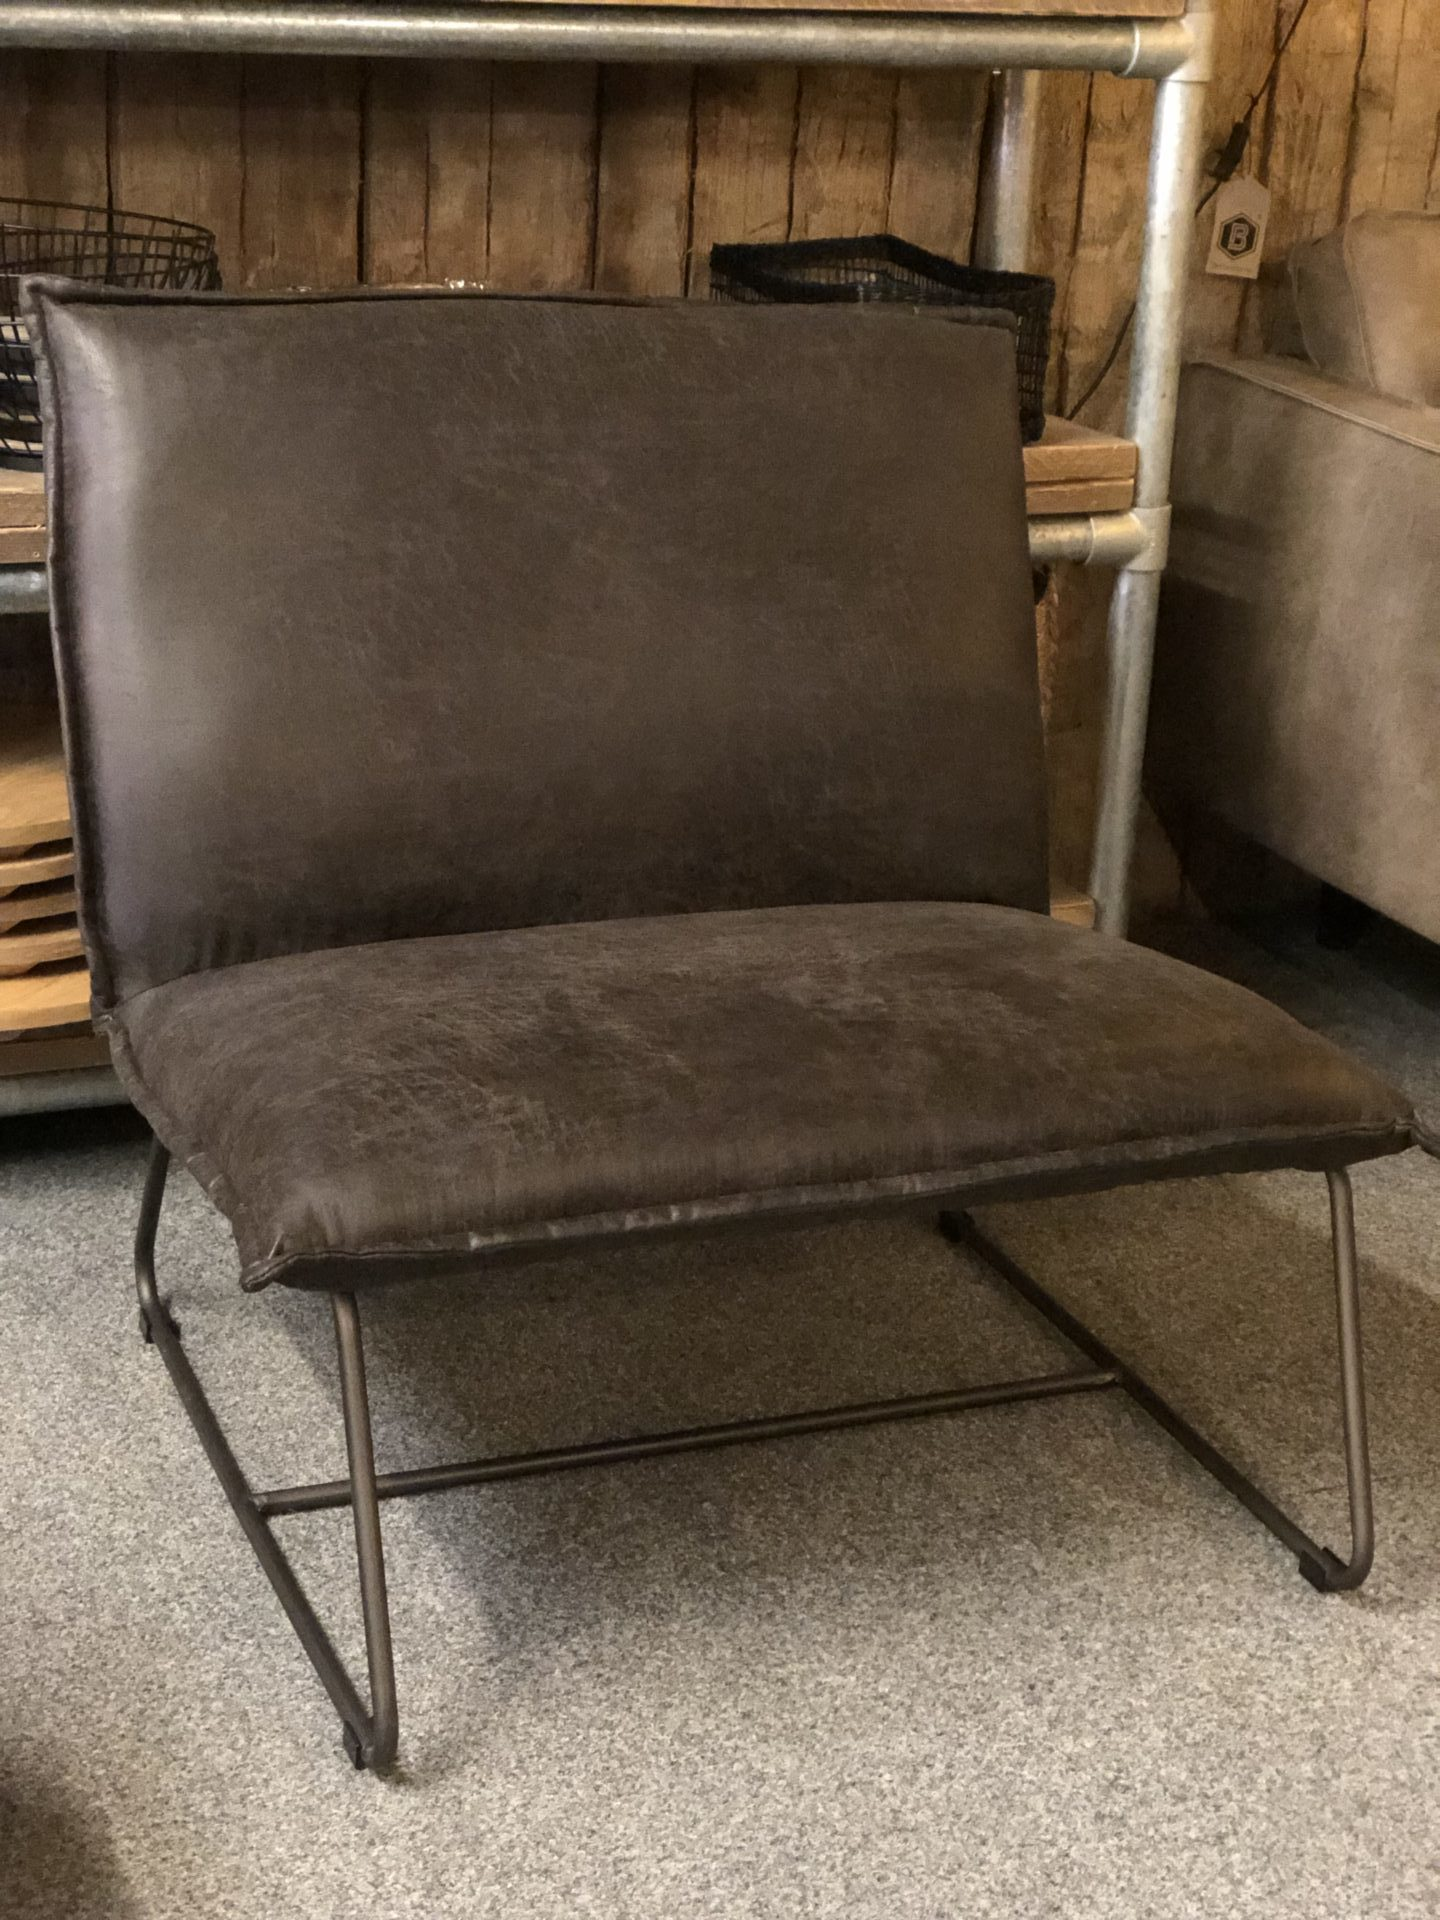 1 5 Fauteuil.Fauteuil 1 5 Zits Brouwer Home Living Lunteren